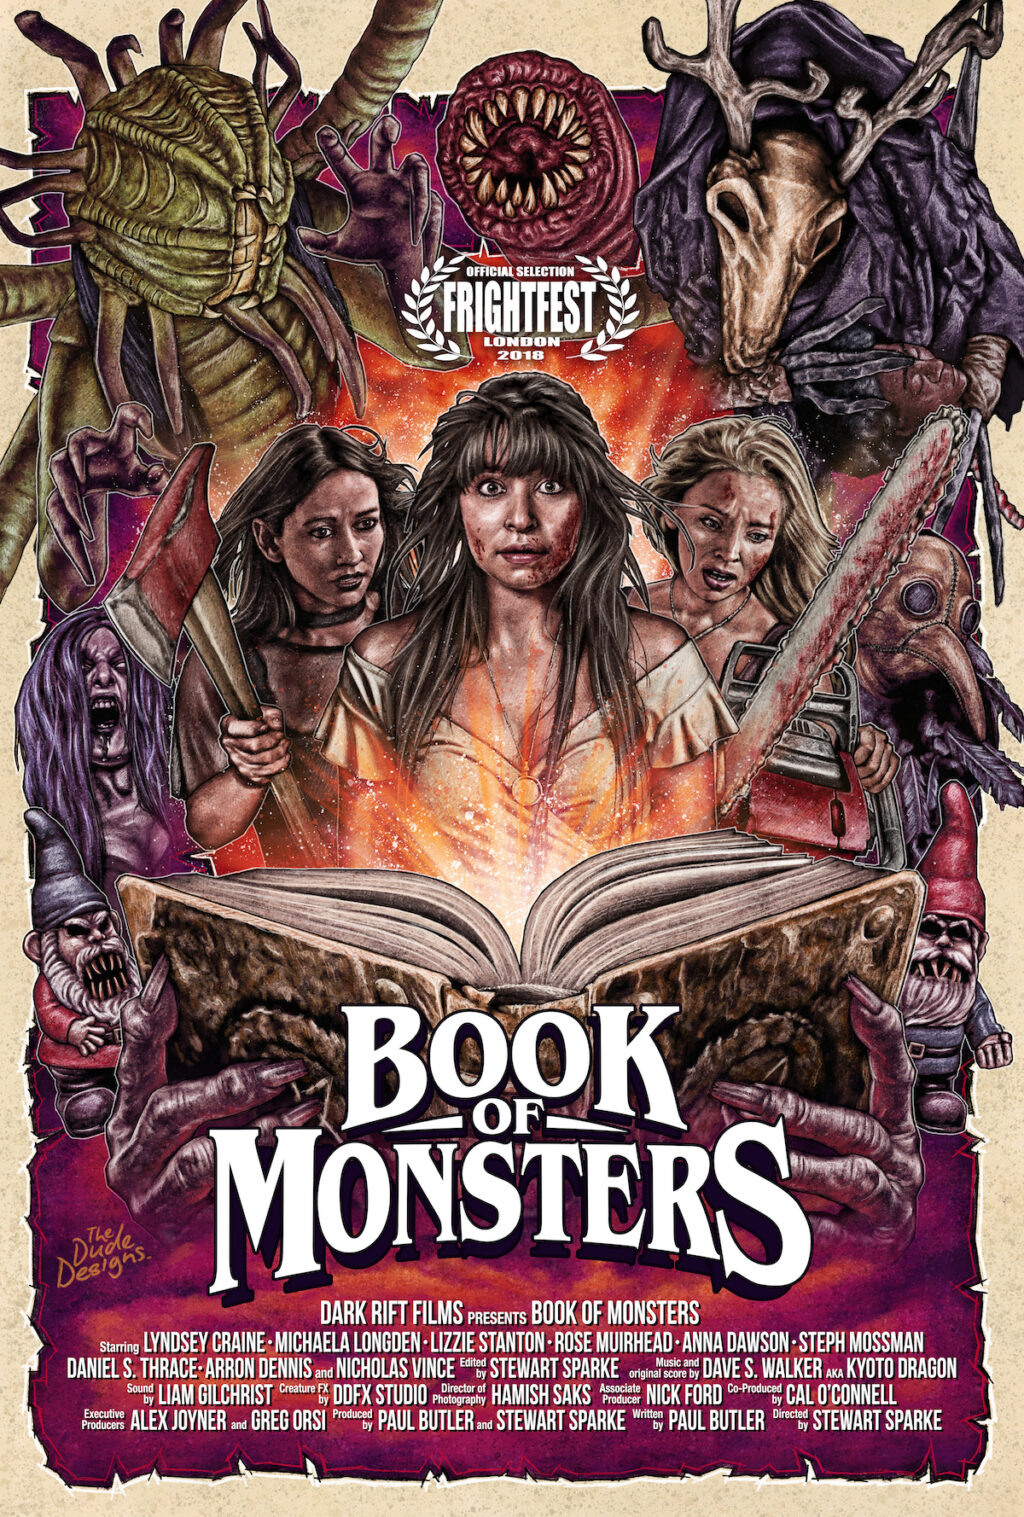 Book of Monsters Poster Laurel 1024x1517 - DREAD Presents: See Abigail Jill Harding's Fantastic BOOK OF MONSTERS Monster Concept Art